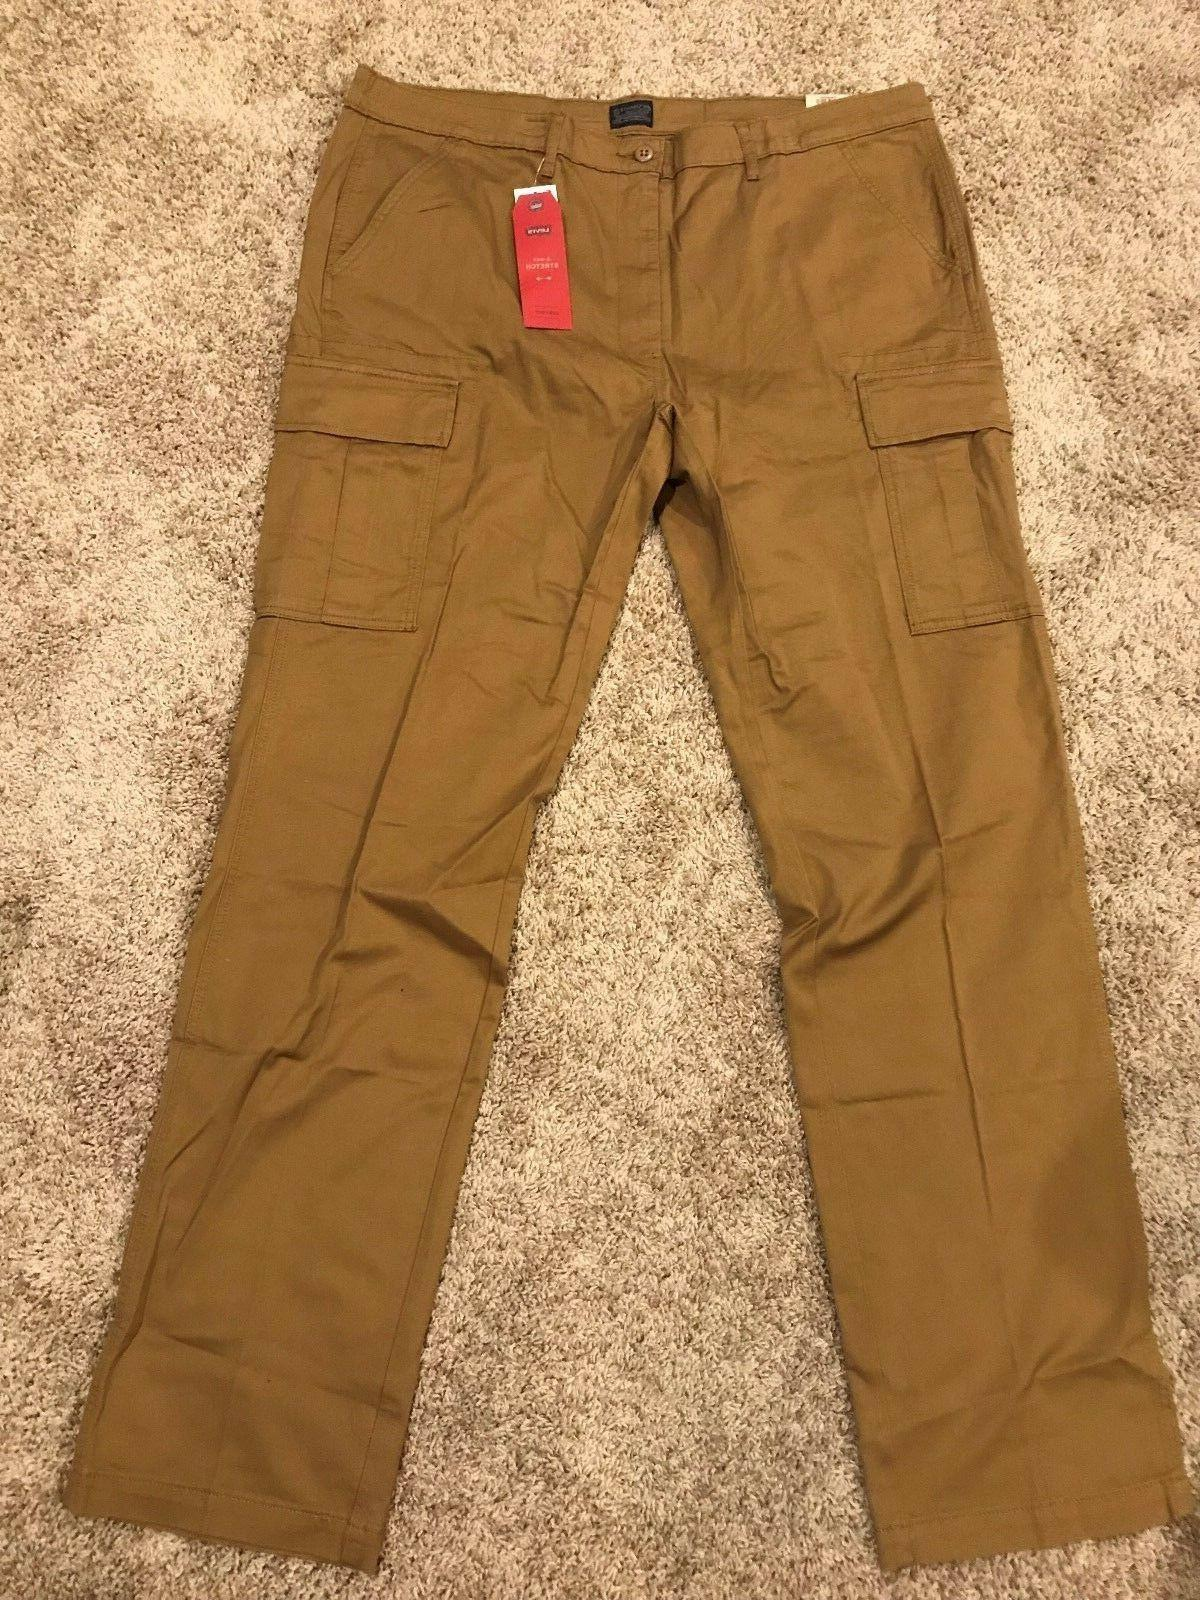 NWT 541 ATHLETIC FIT W/STRETCH CARGO PANTS MANY RT$79